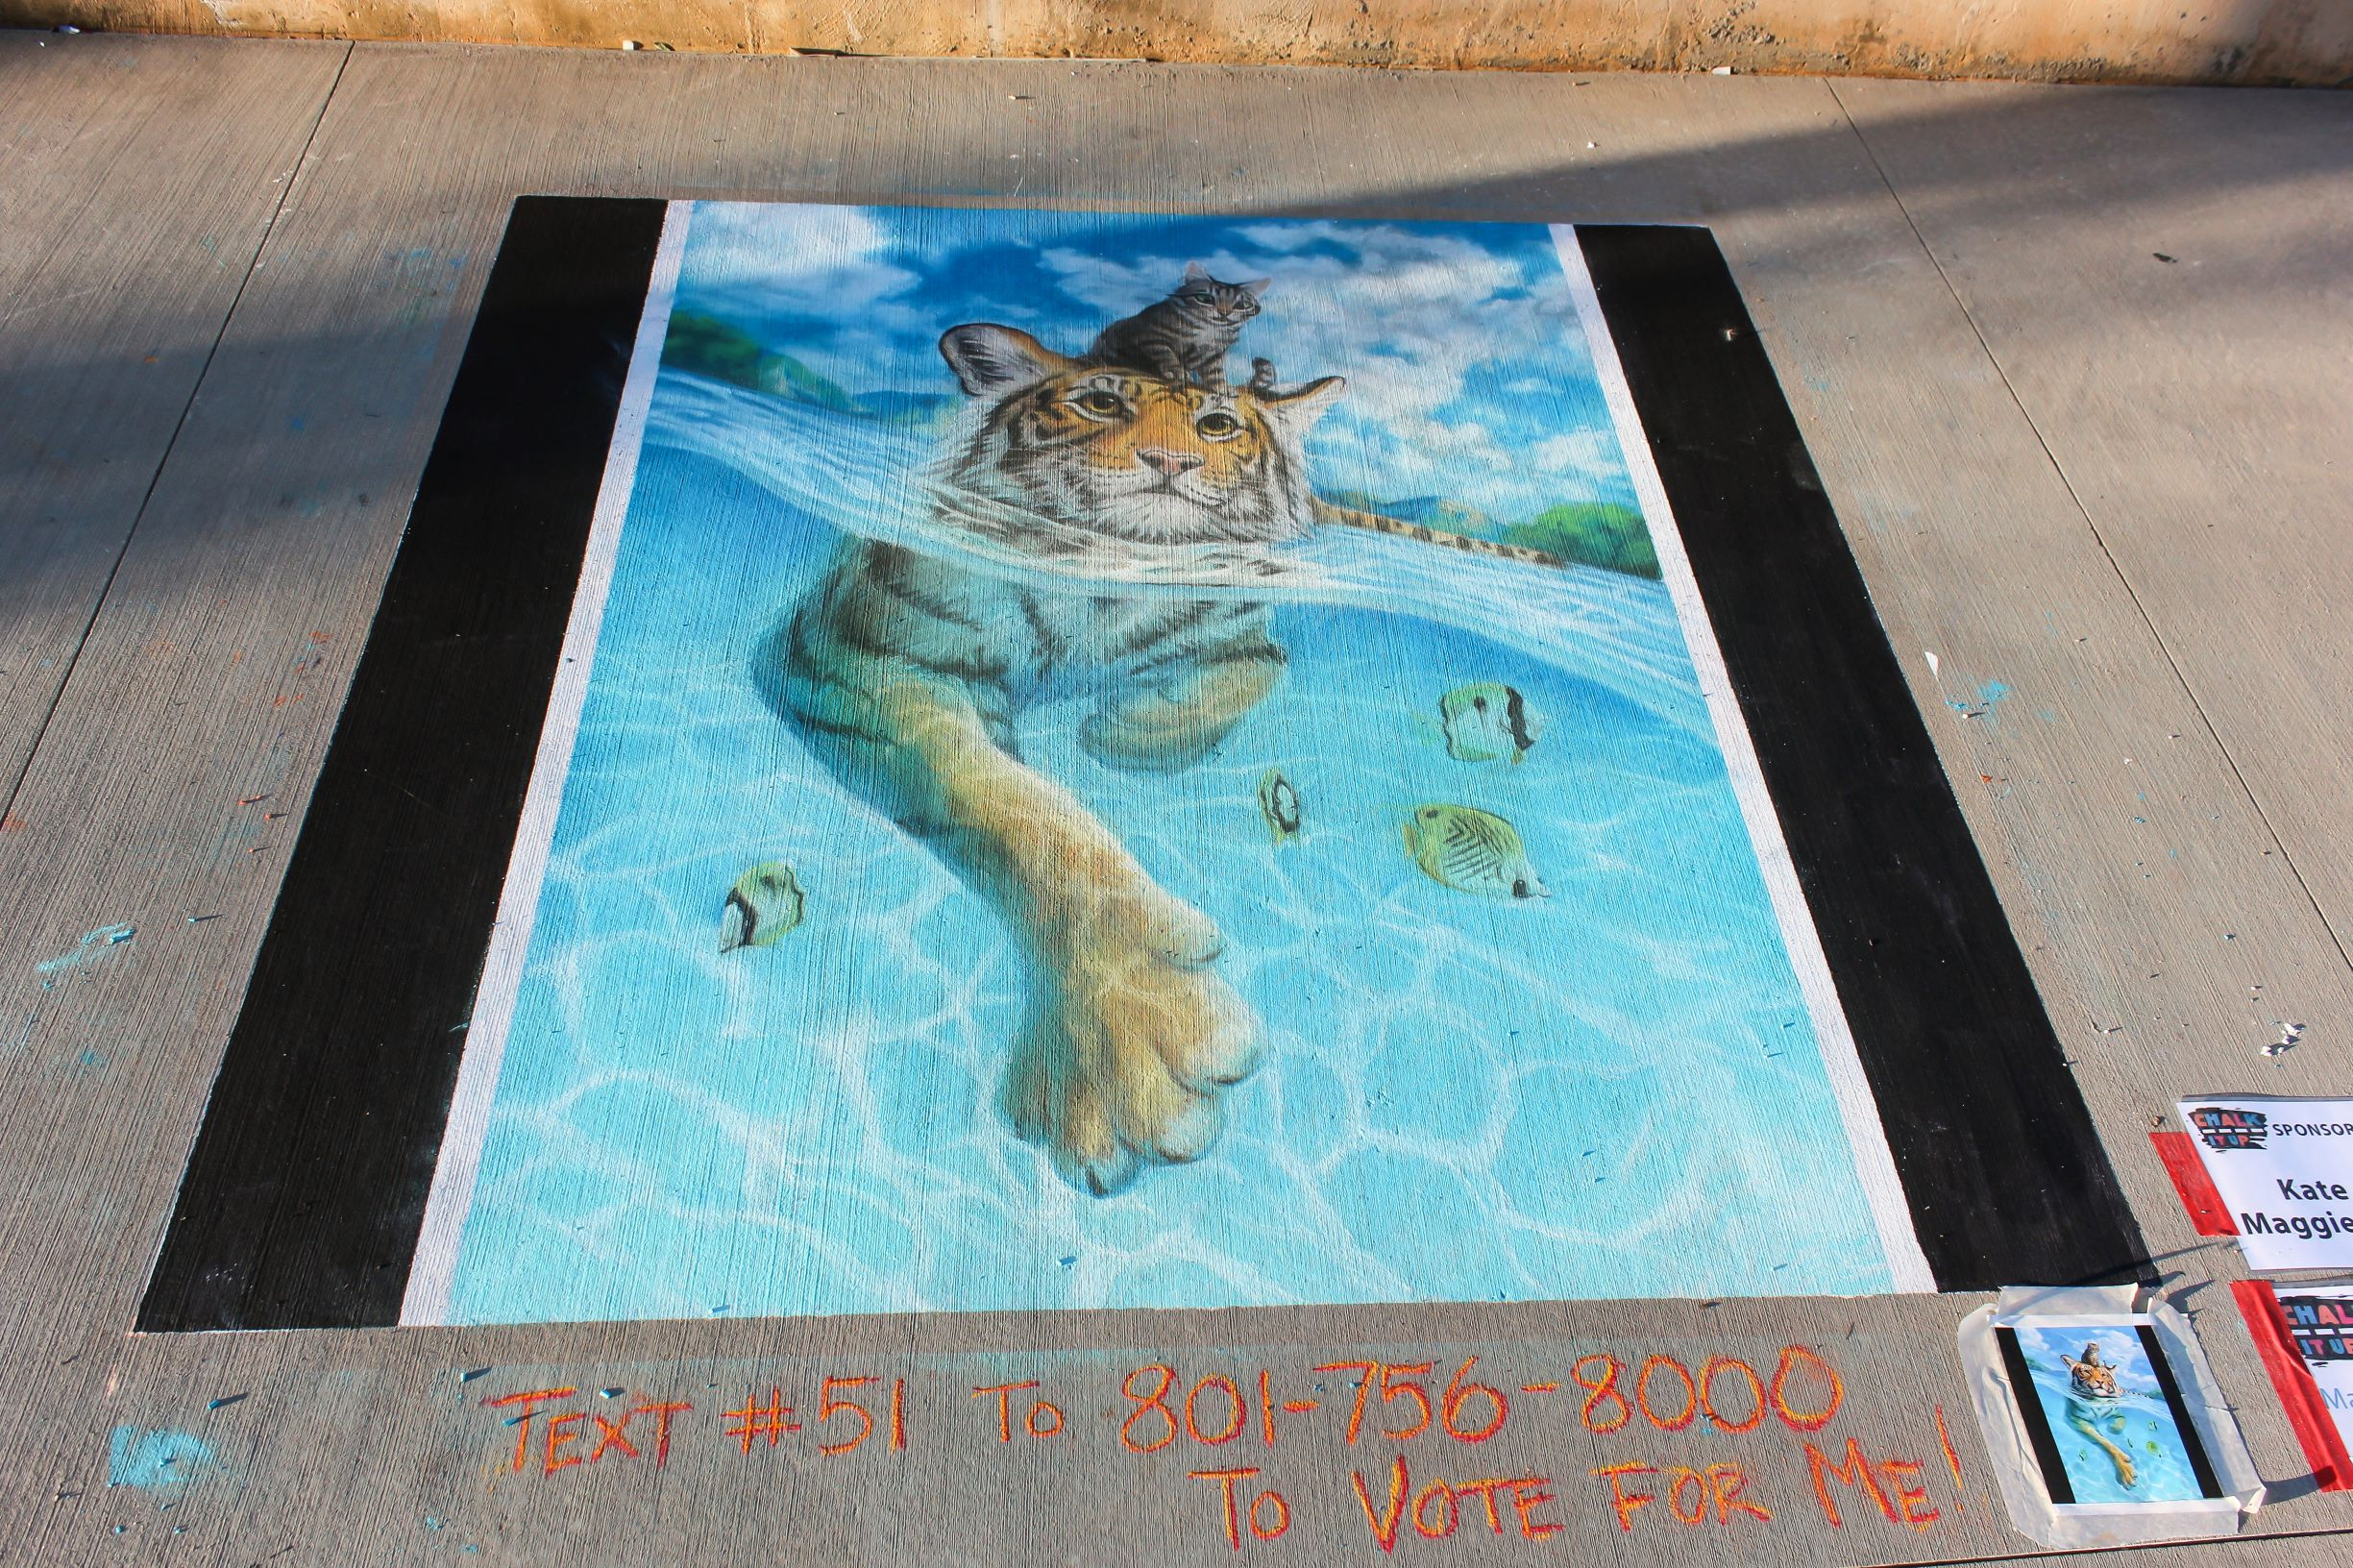 A cat on top of a swimming tiger